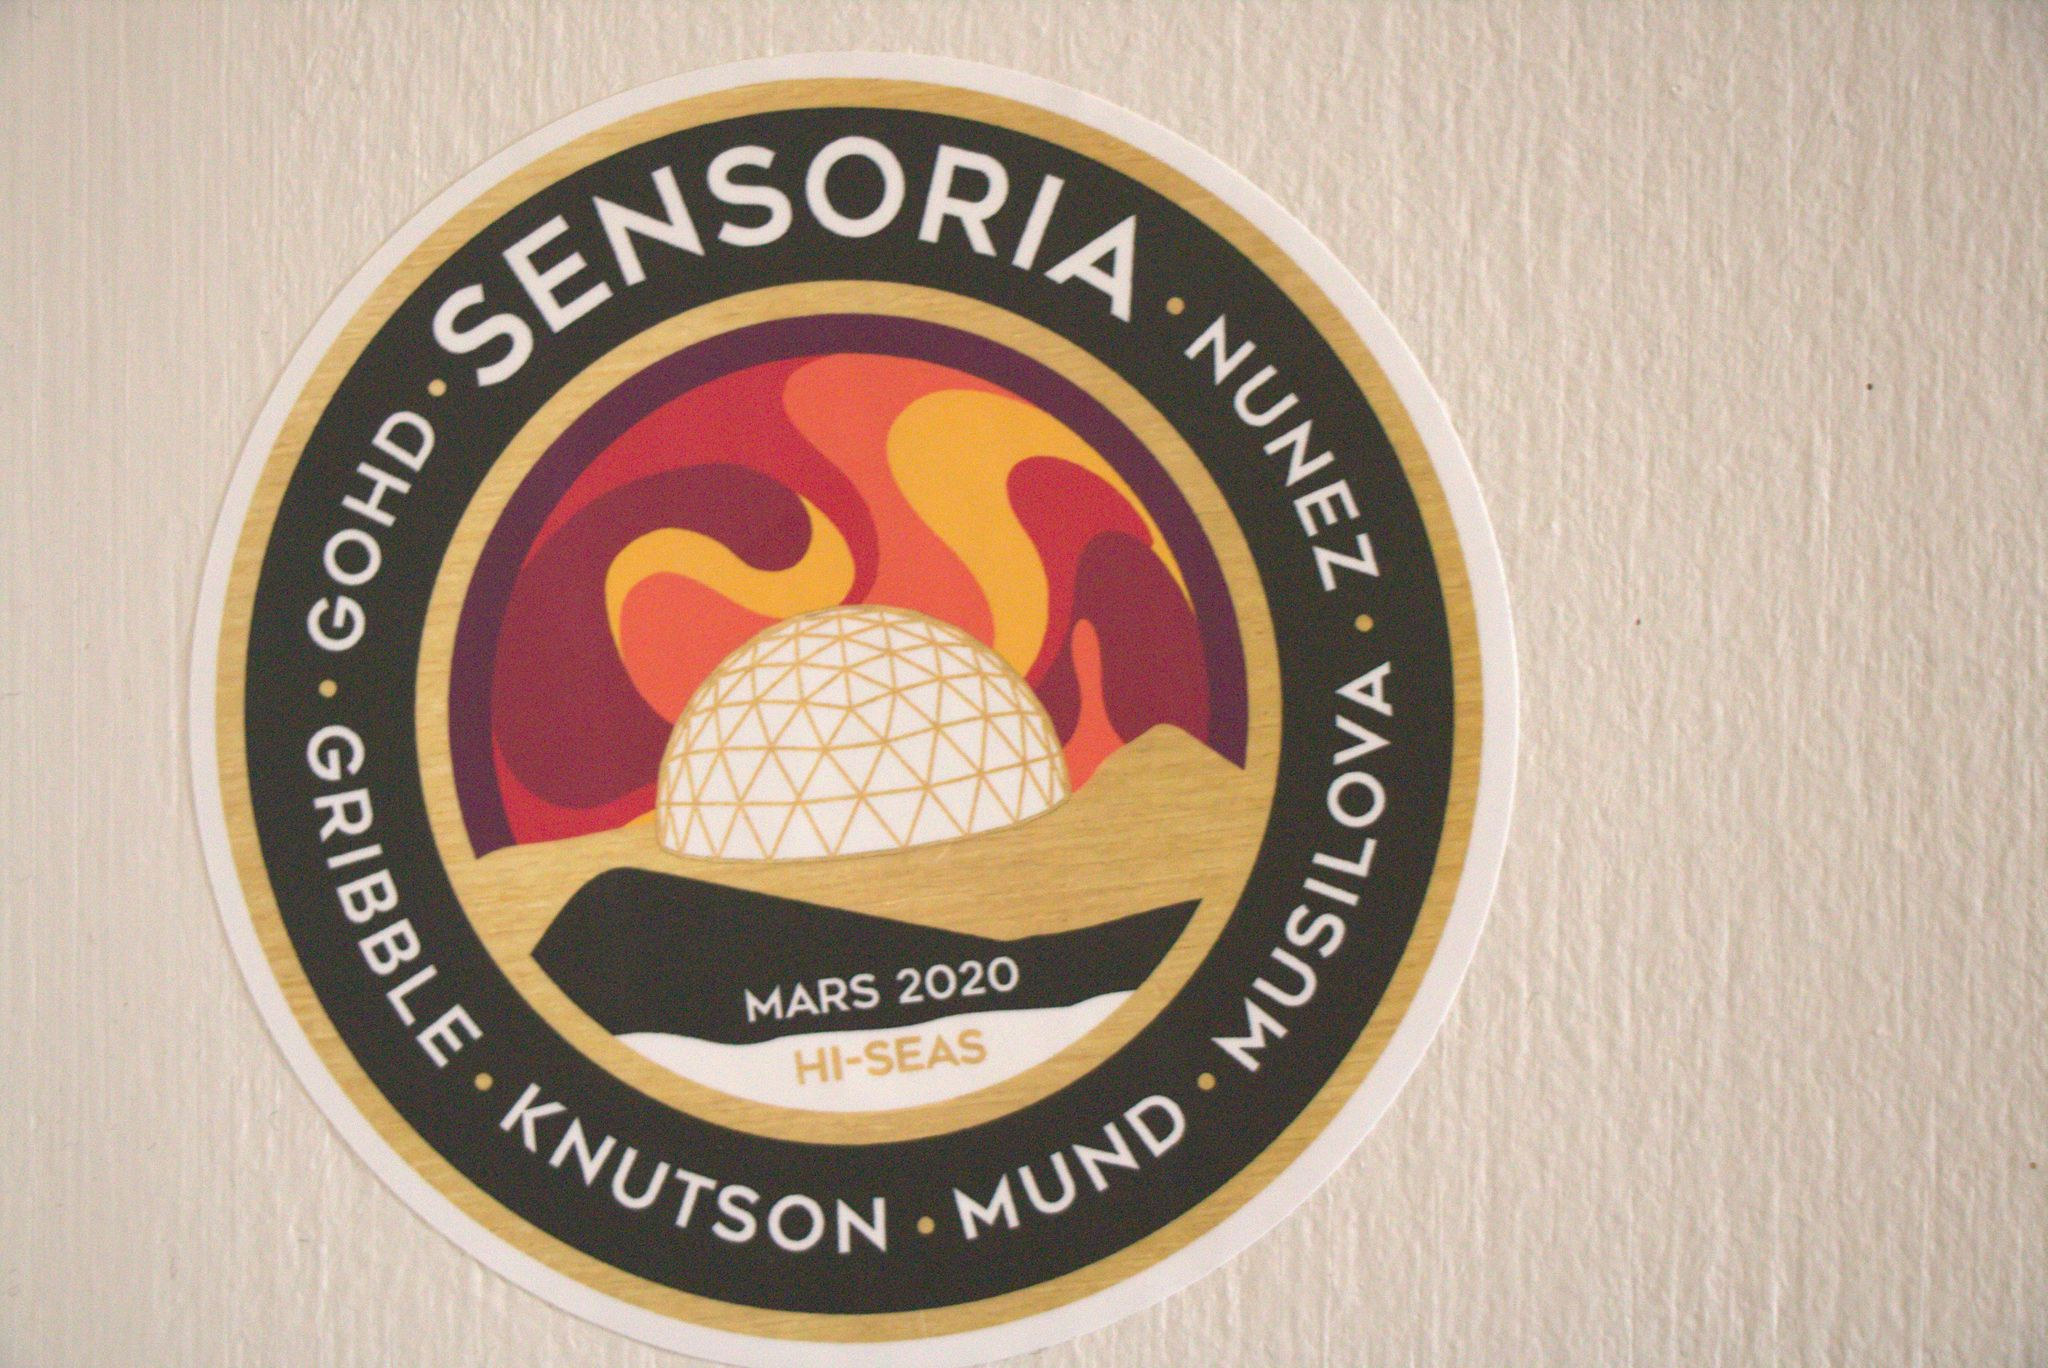 Day 2 (Sol 2) of the Sensoria 2 Mars simulation mission at the HI-SEAS habitat in Hawaii.